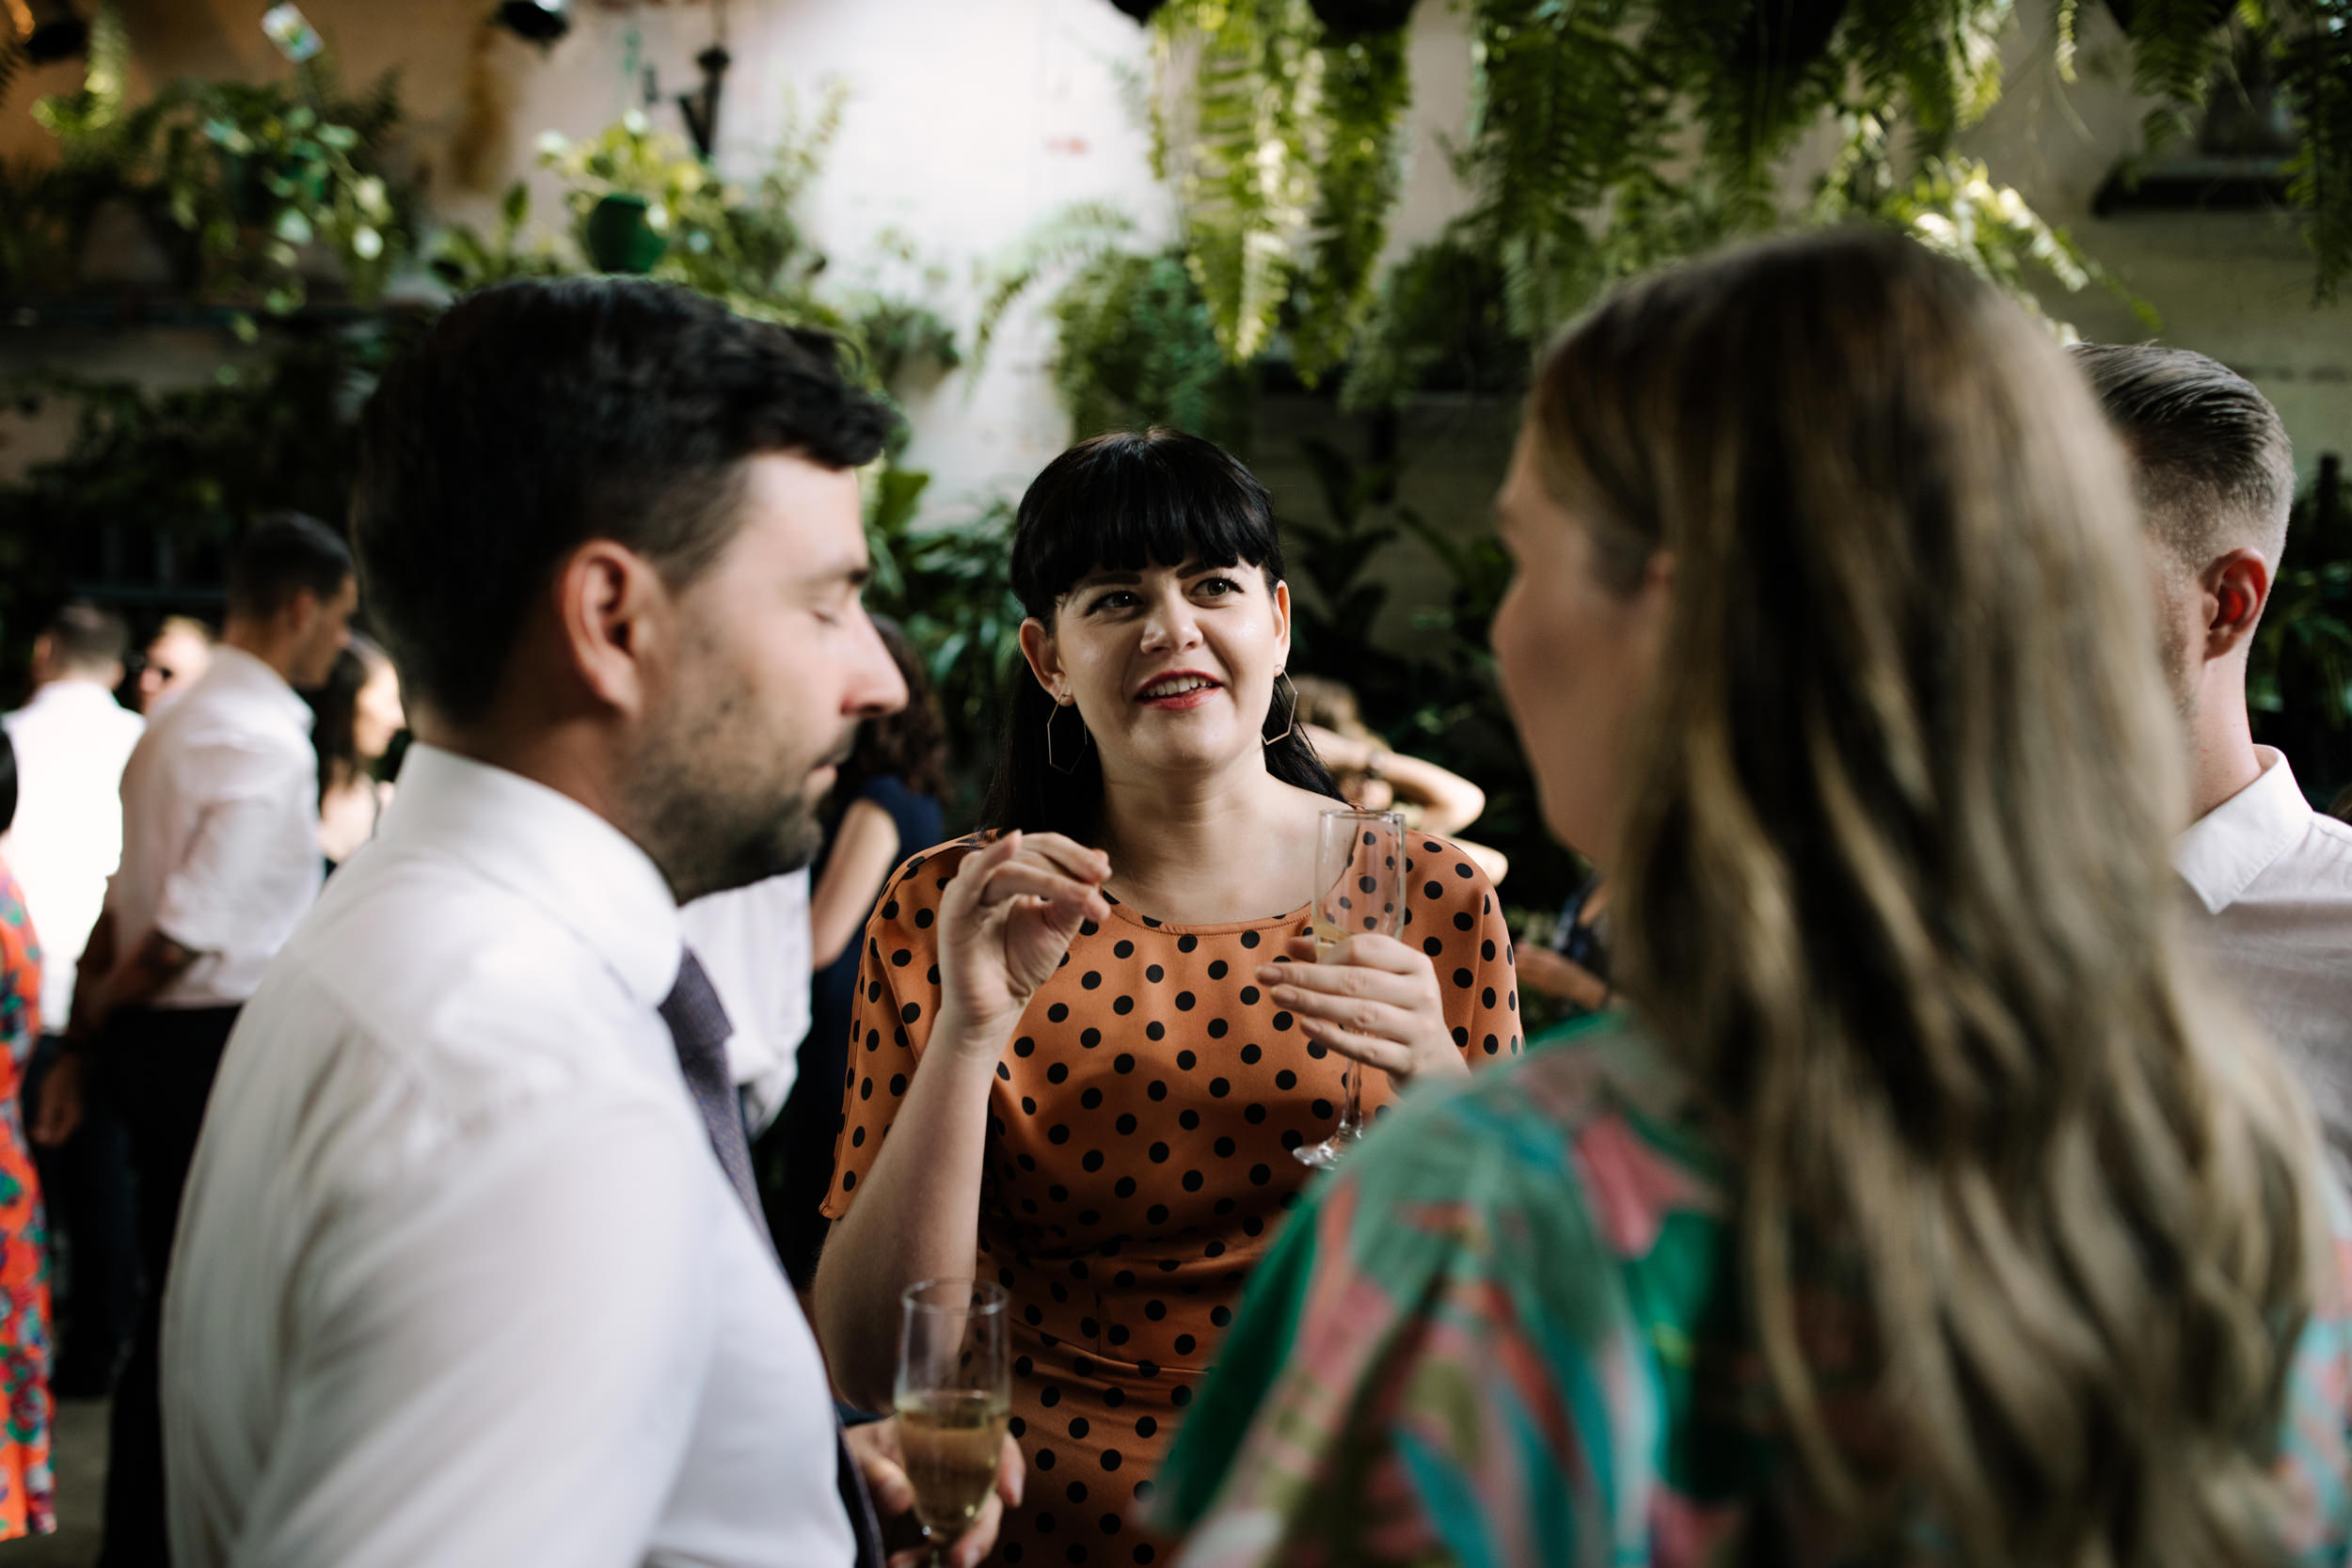 I_Got_You_Babe_Weddings_Emily_Matt_Rupert_Glasshaus_Melbourne0104.JPG